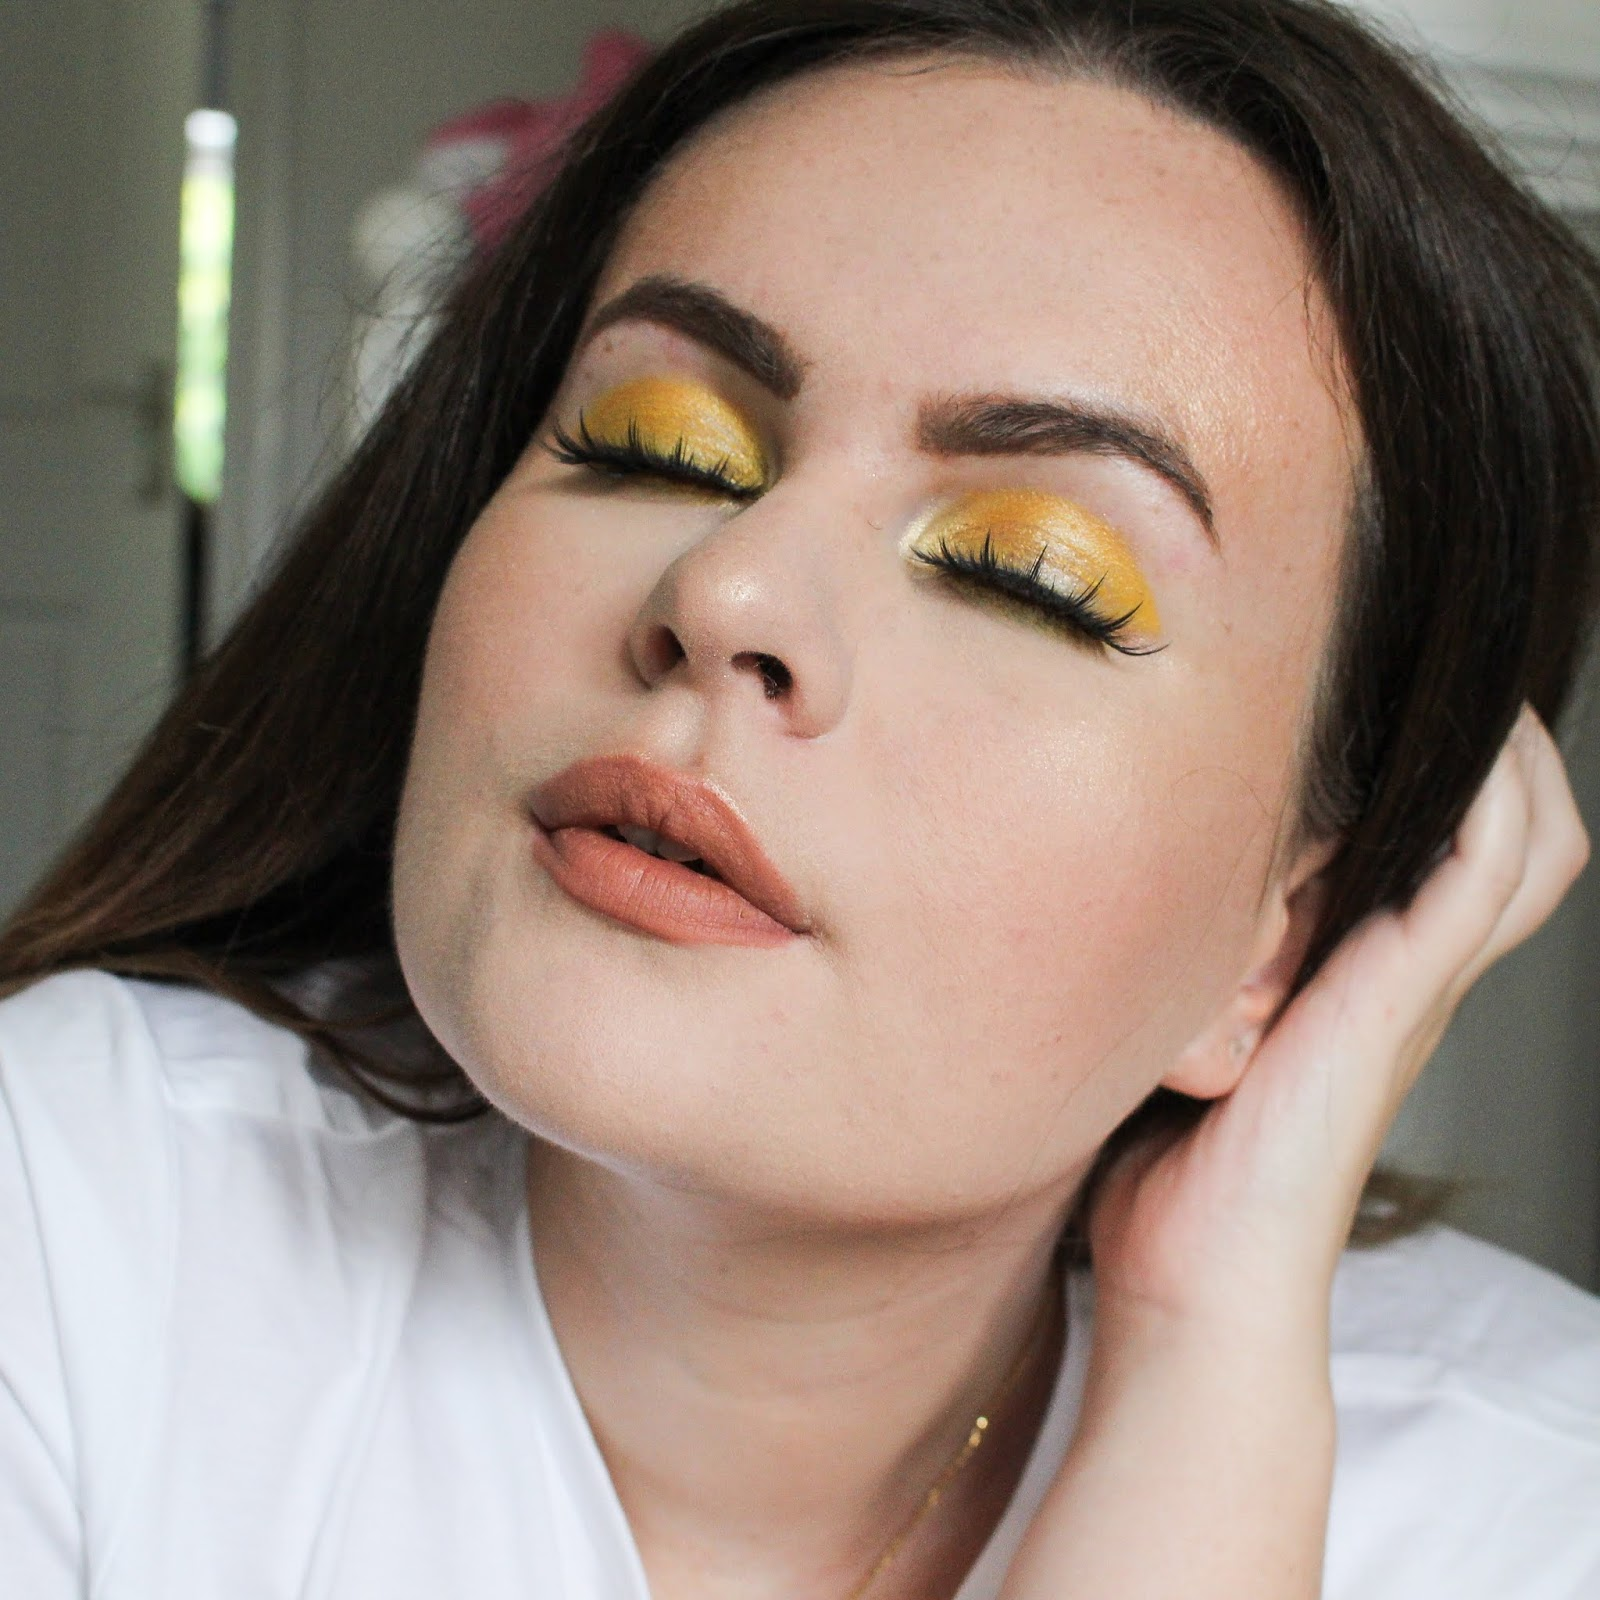 crayola beauty, crayola makeup, koko lashes, welovelashes, crayola makeup look, yellow eye look